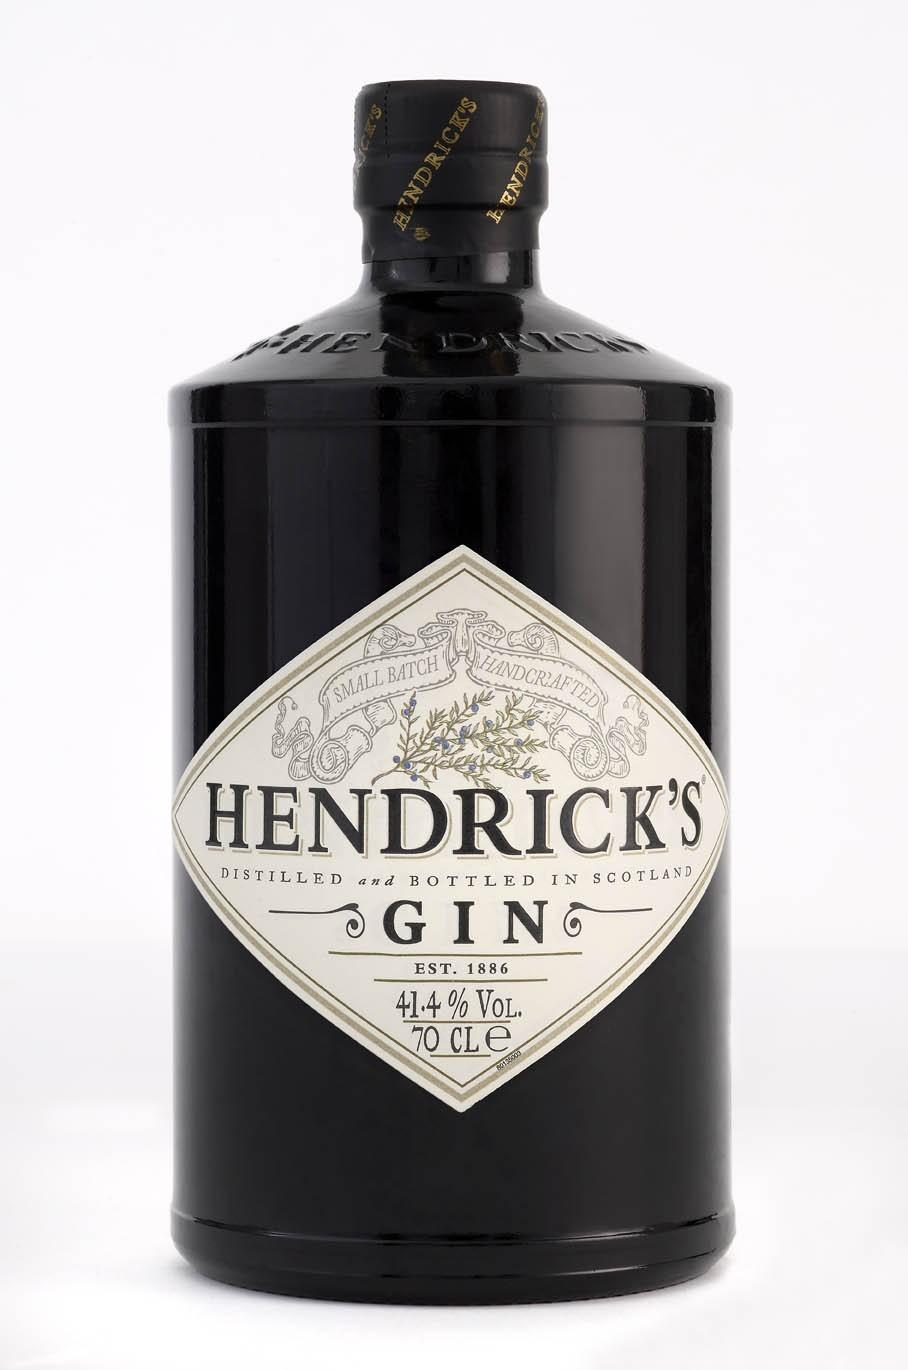 Hendrick's bottle  290107.JPG